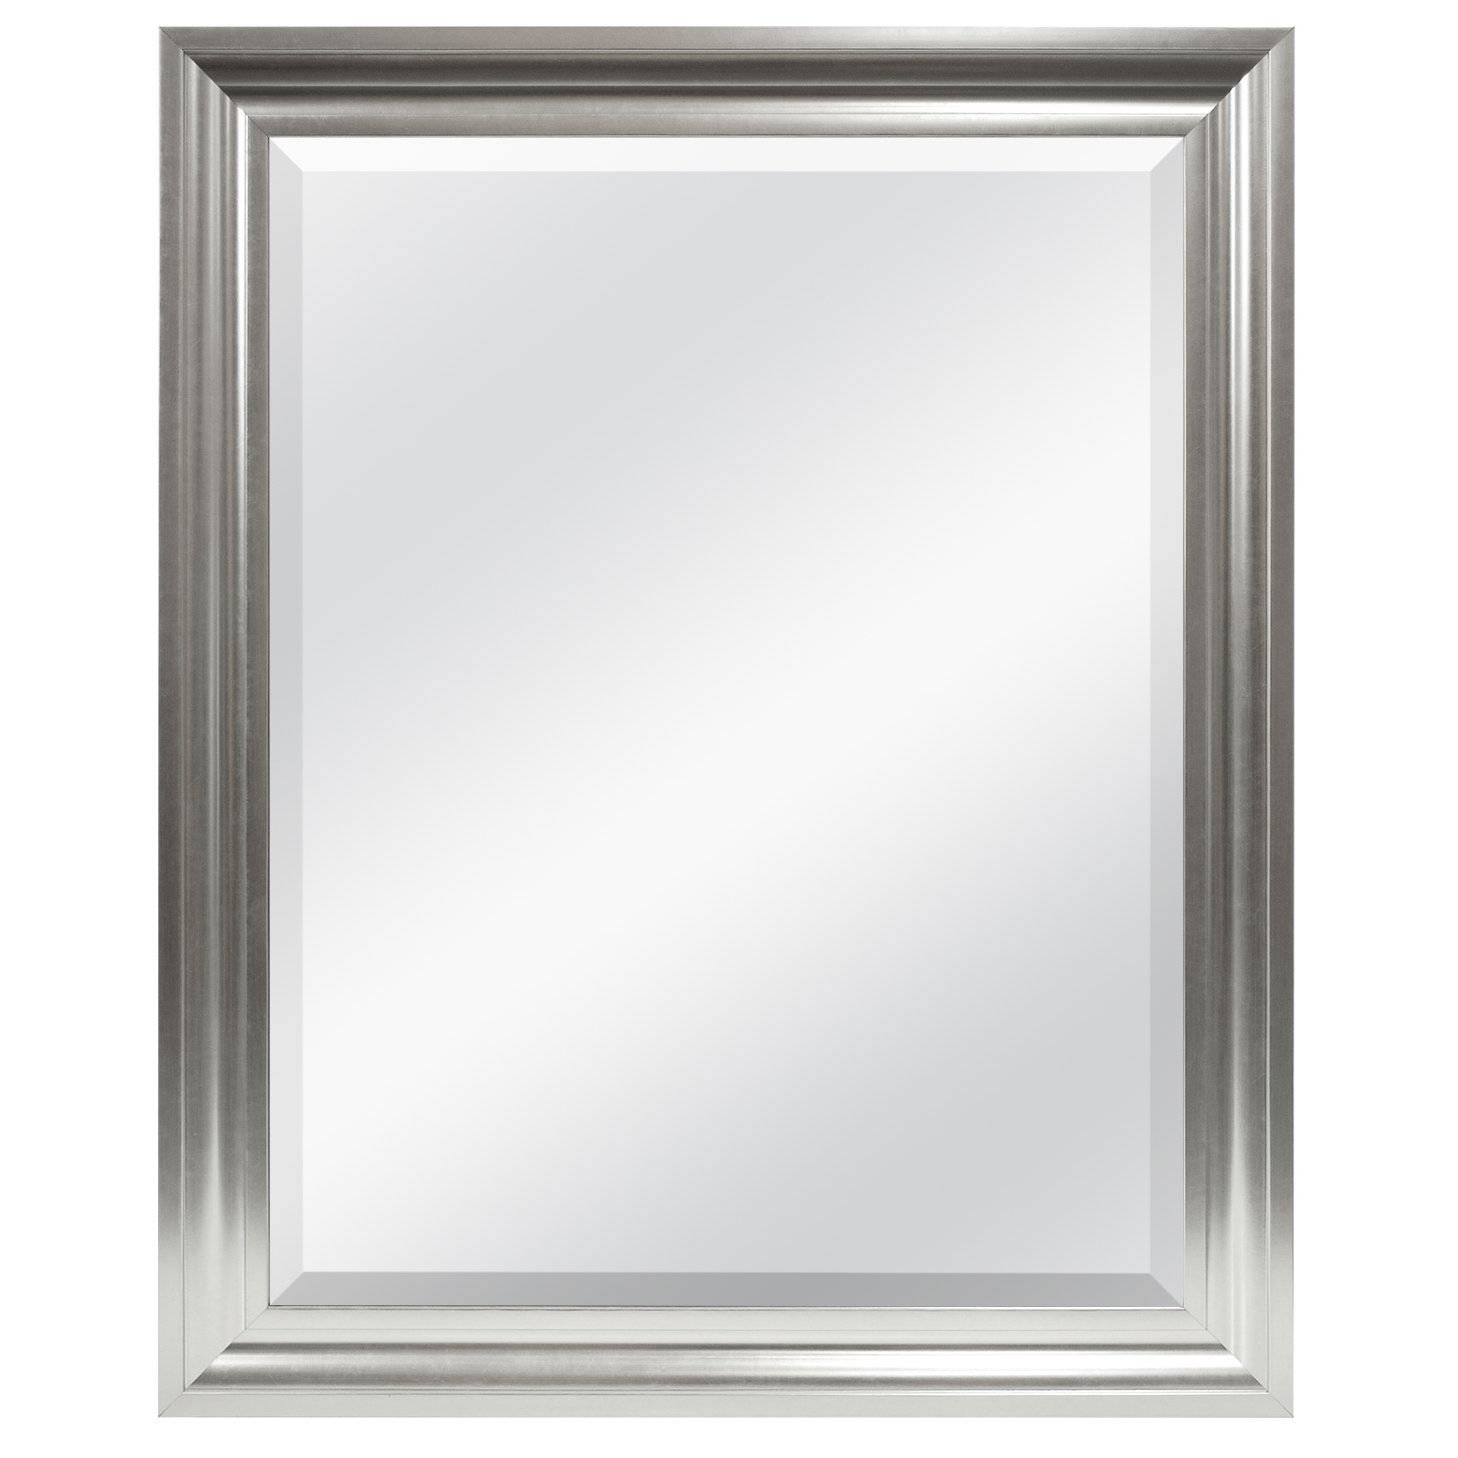 Bathroom: Frameless Beveled Bathroom Mirror | Frameless Beveled regarding Full Length Frameless Mirrors (Image 1 of 25)